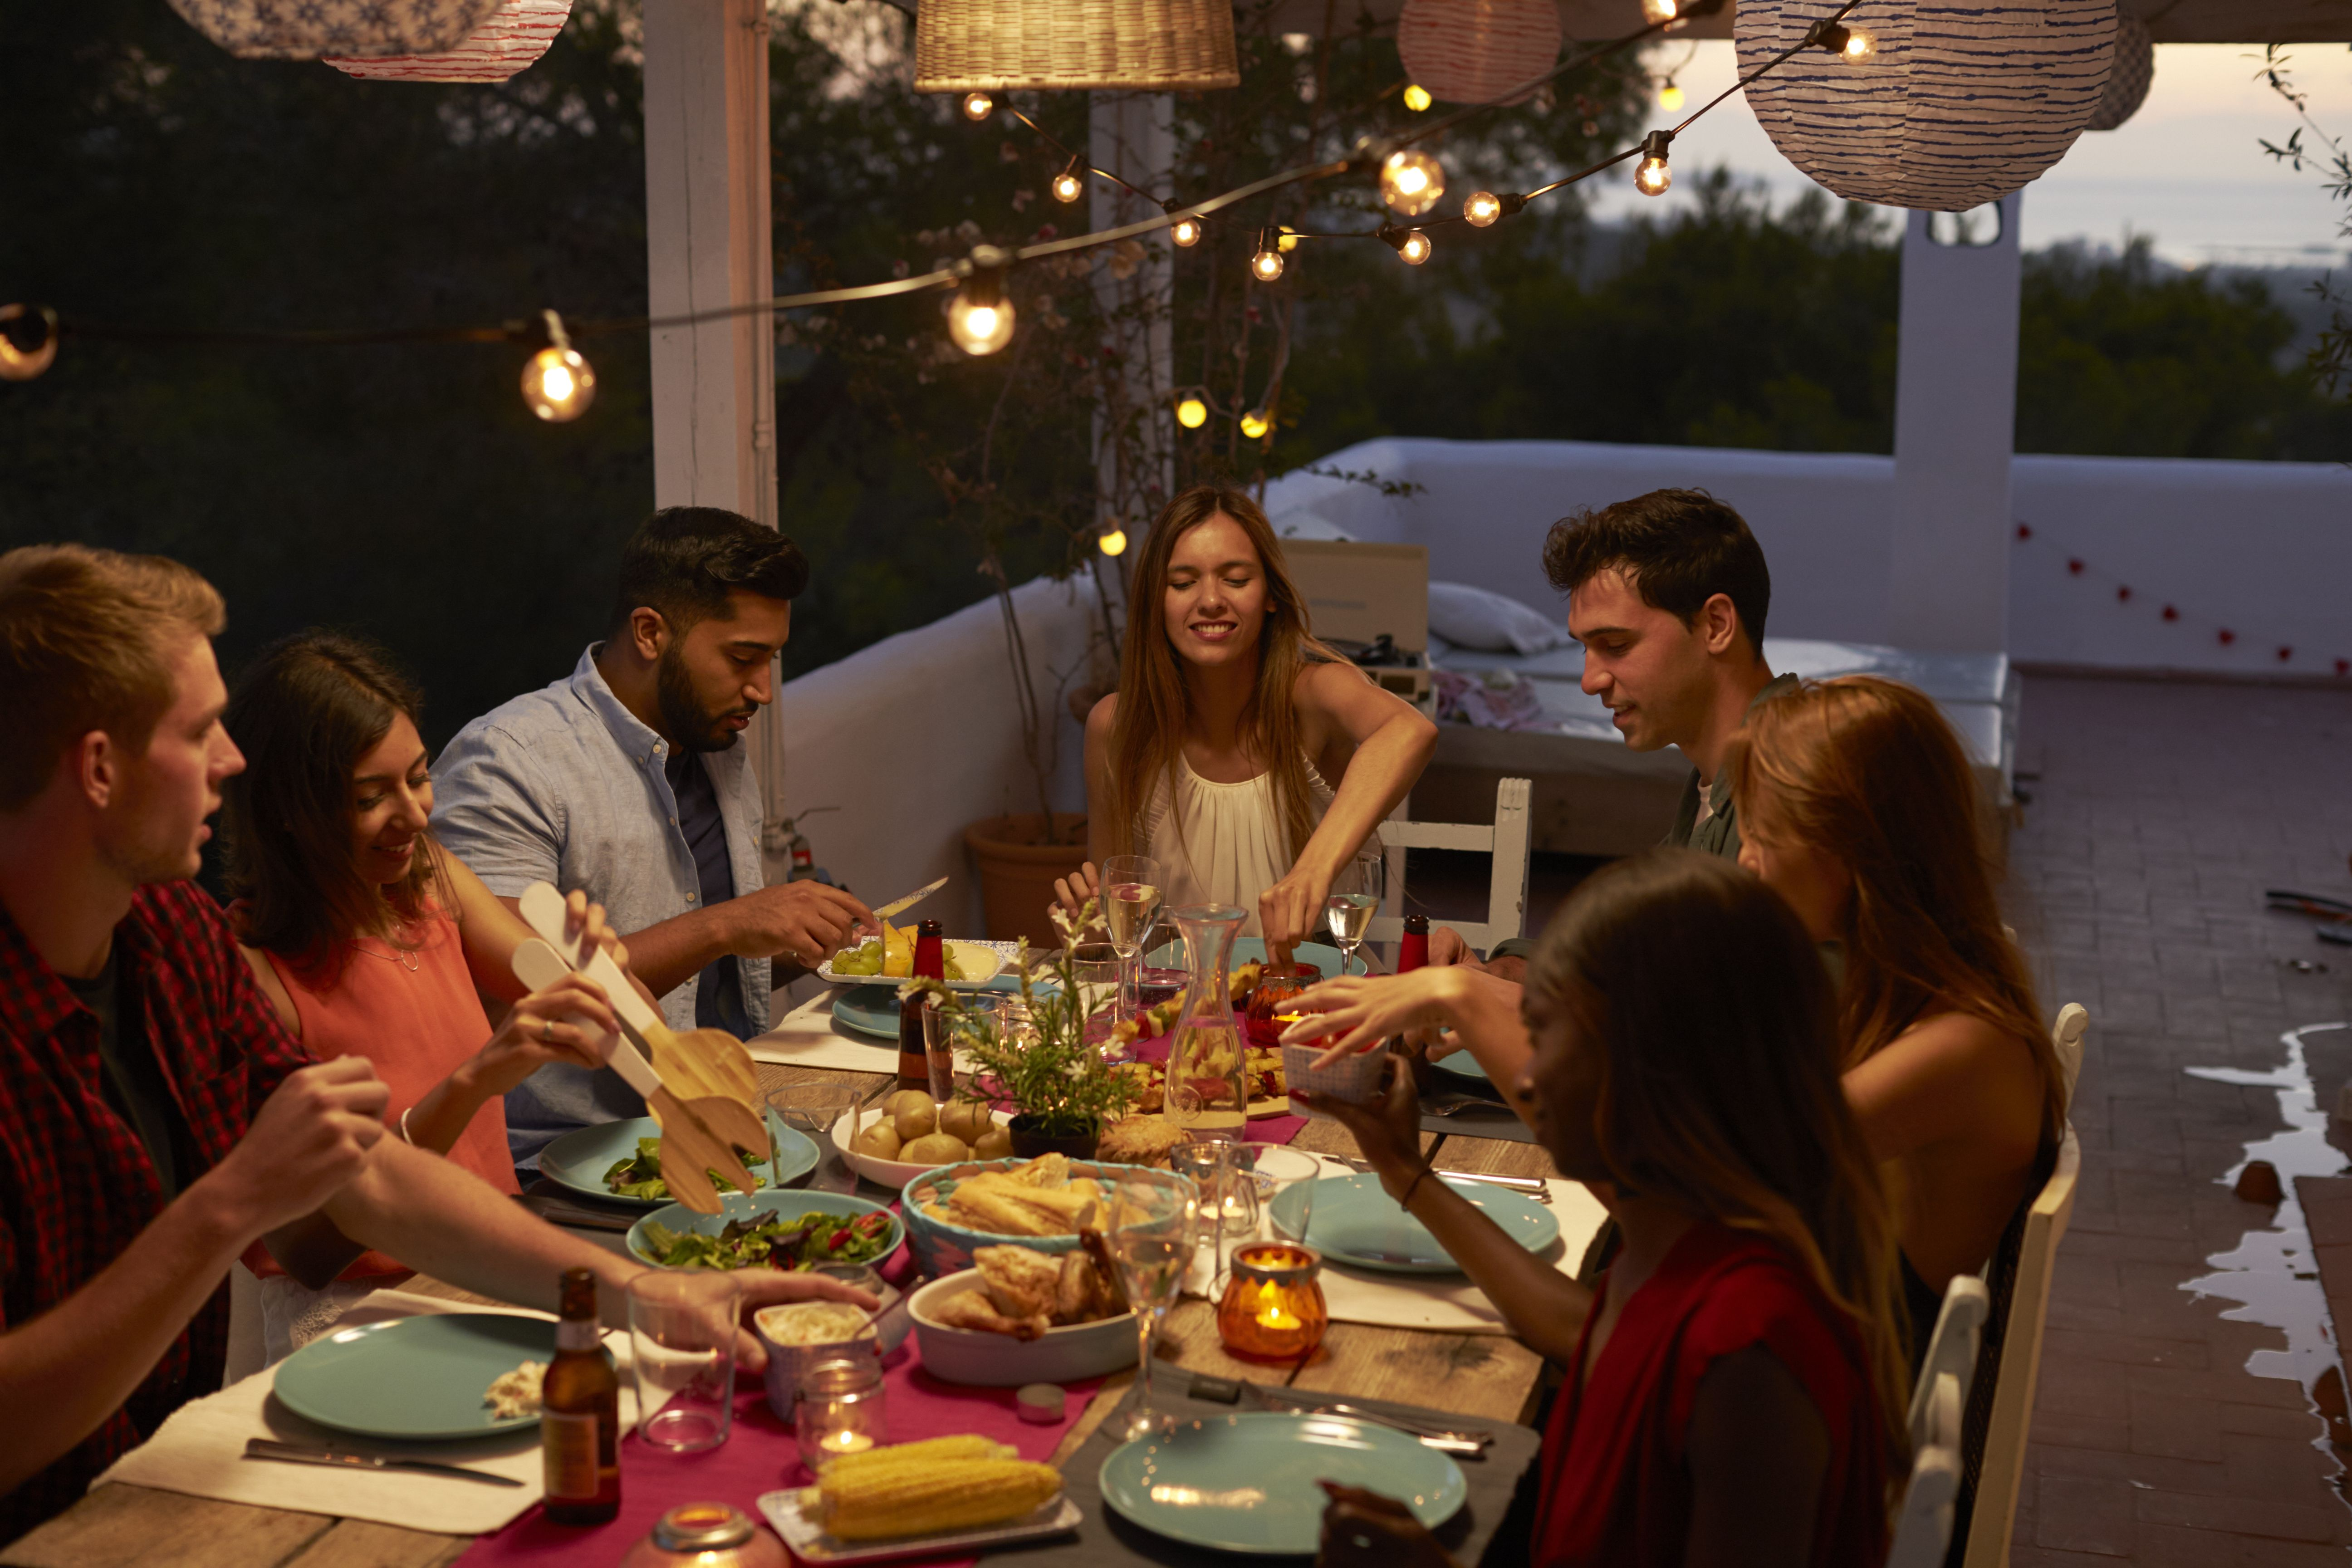 How To Setup Your Backyard Or Patio For The Perfect Memorial Day Bbq Perfect Memorials Backyard Memorial Day